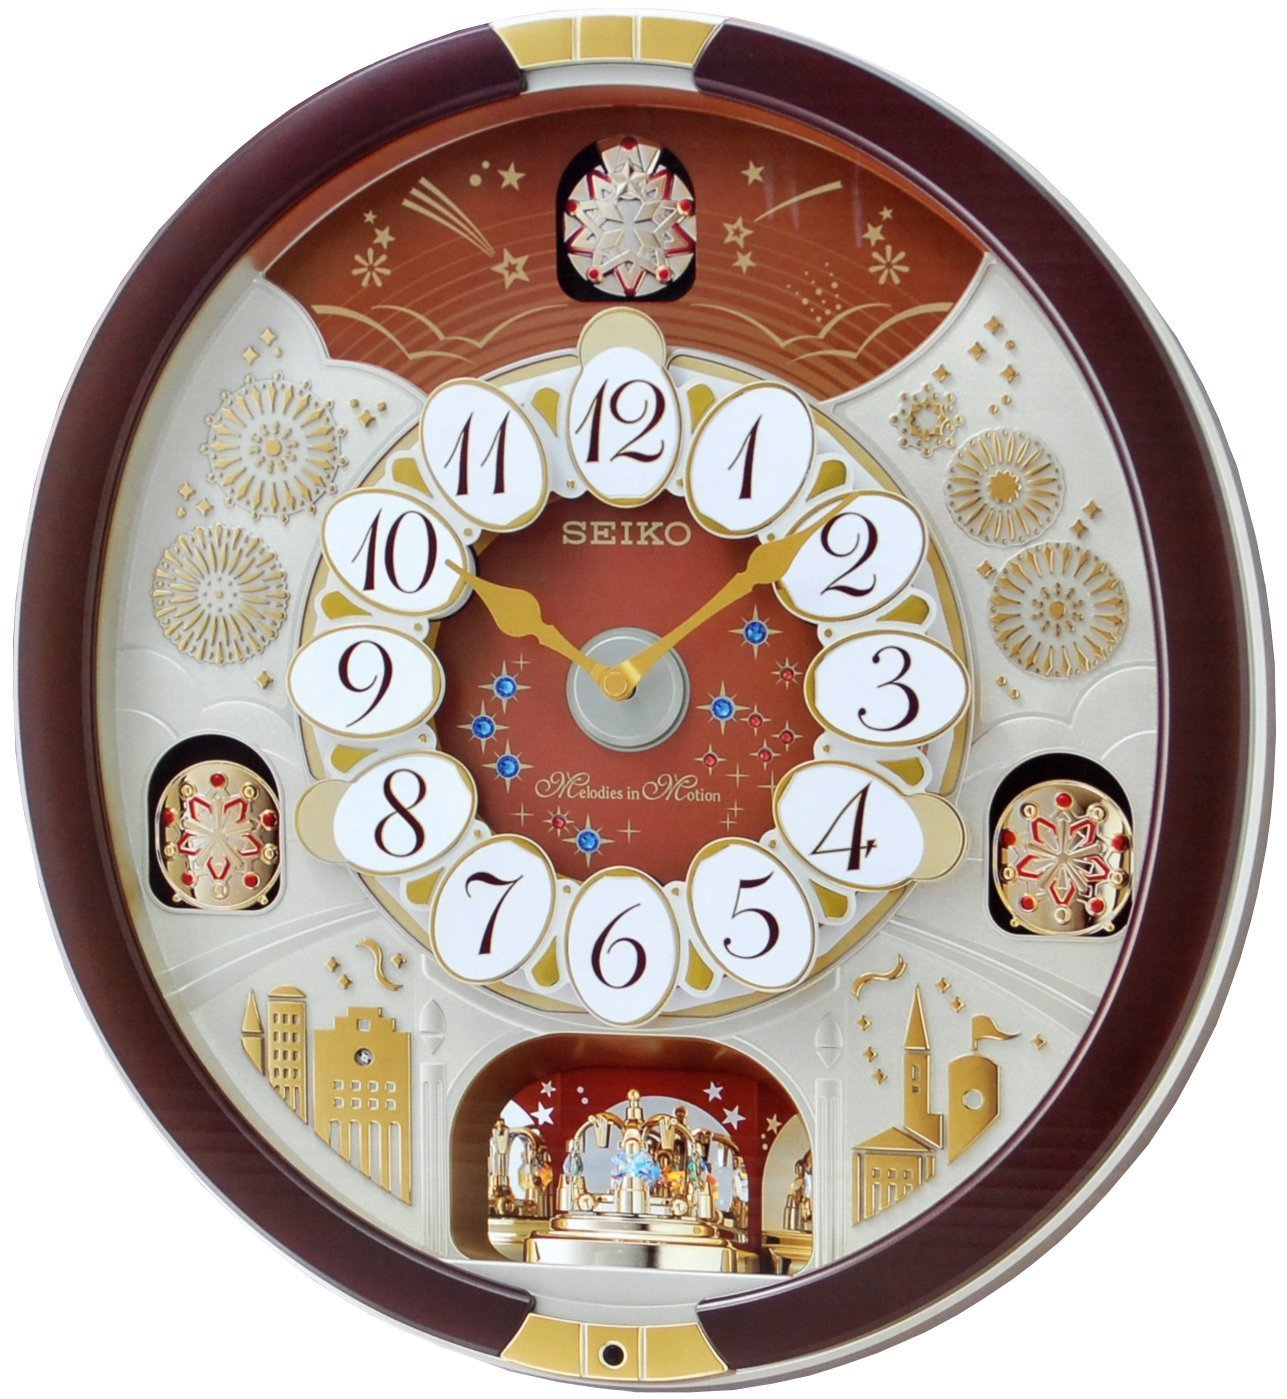 Seiko Special Collector's Edition Melodies in Motion Wall Clock with Swarovski Crystals by Seiko